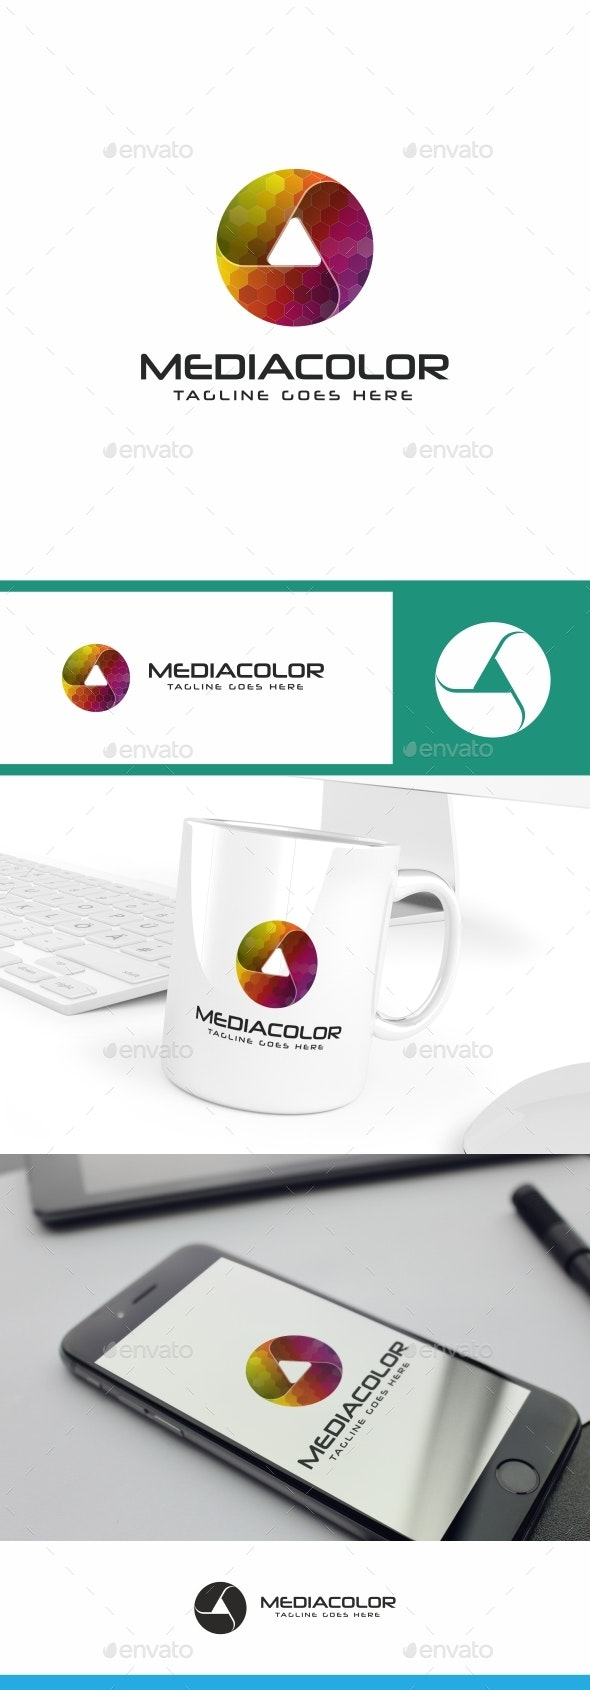 Play Media Color Logo - Symbols Logo Templates